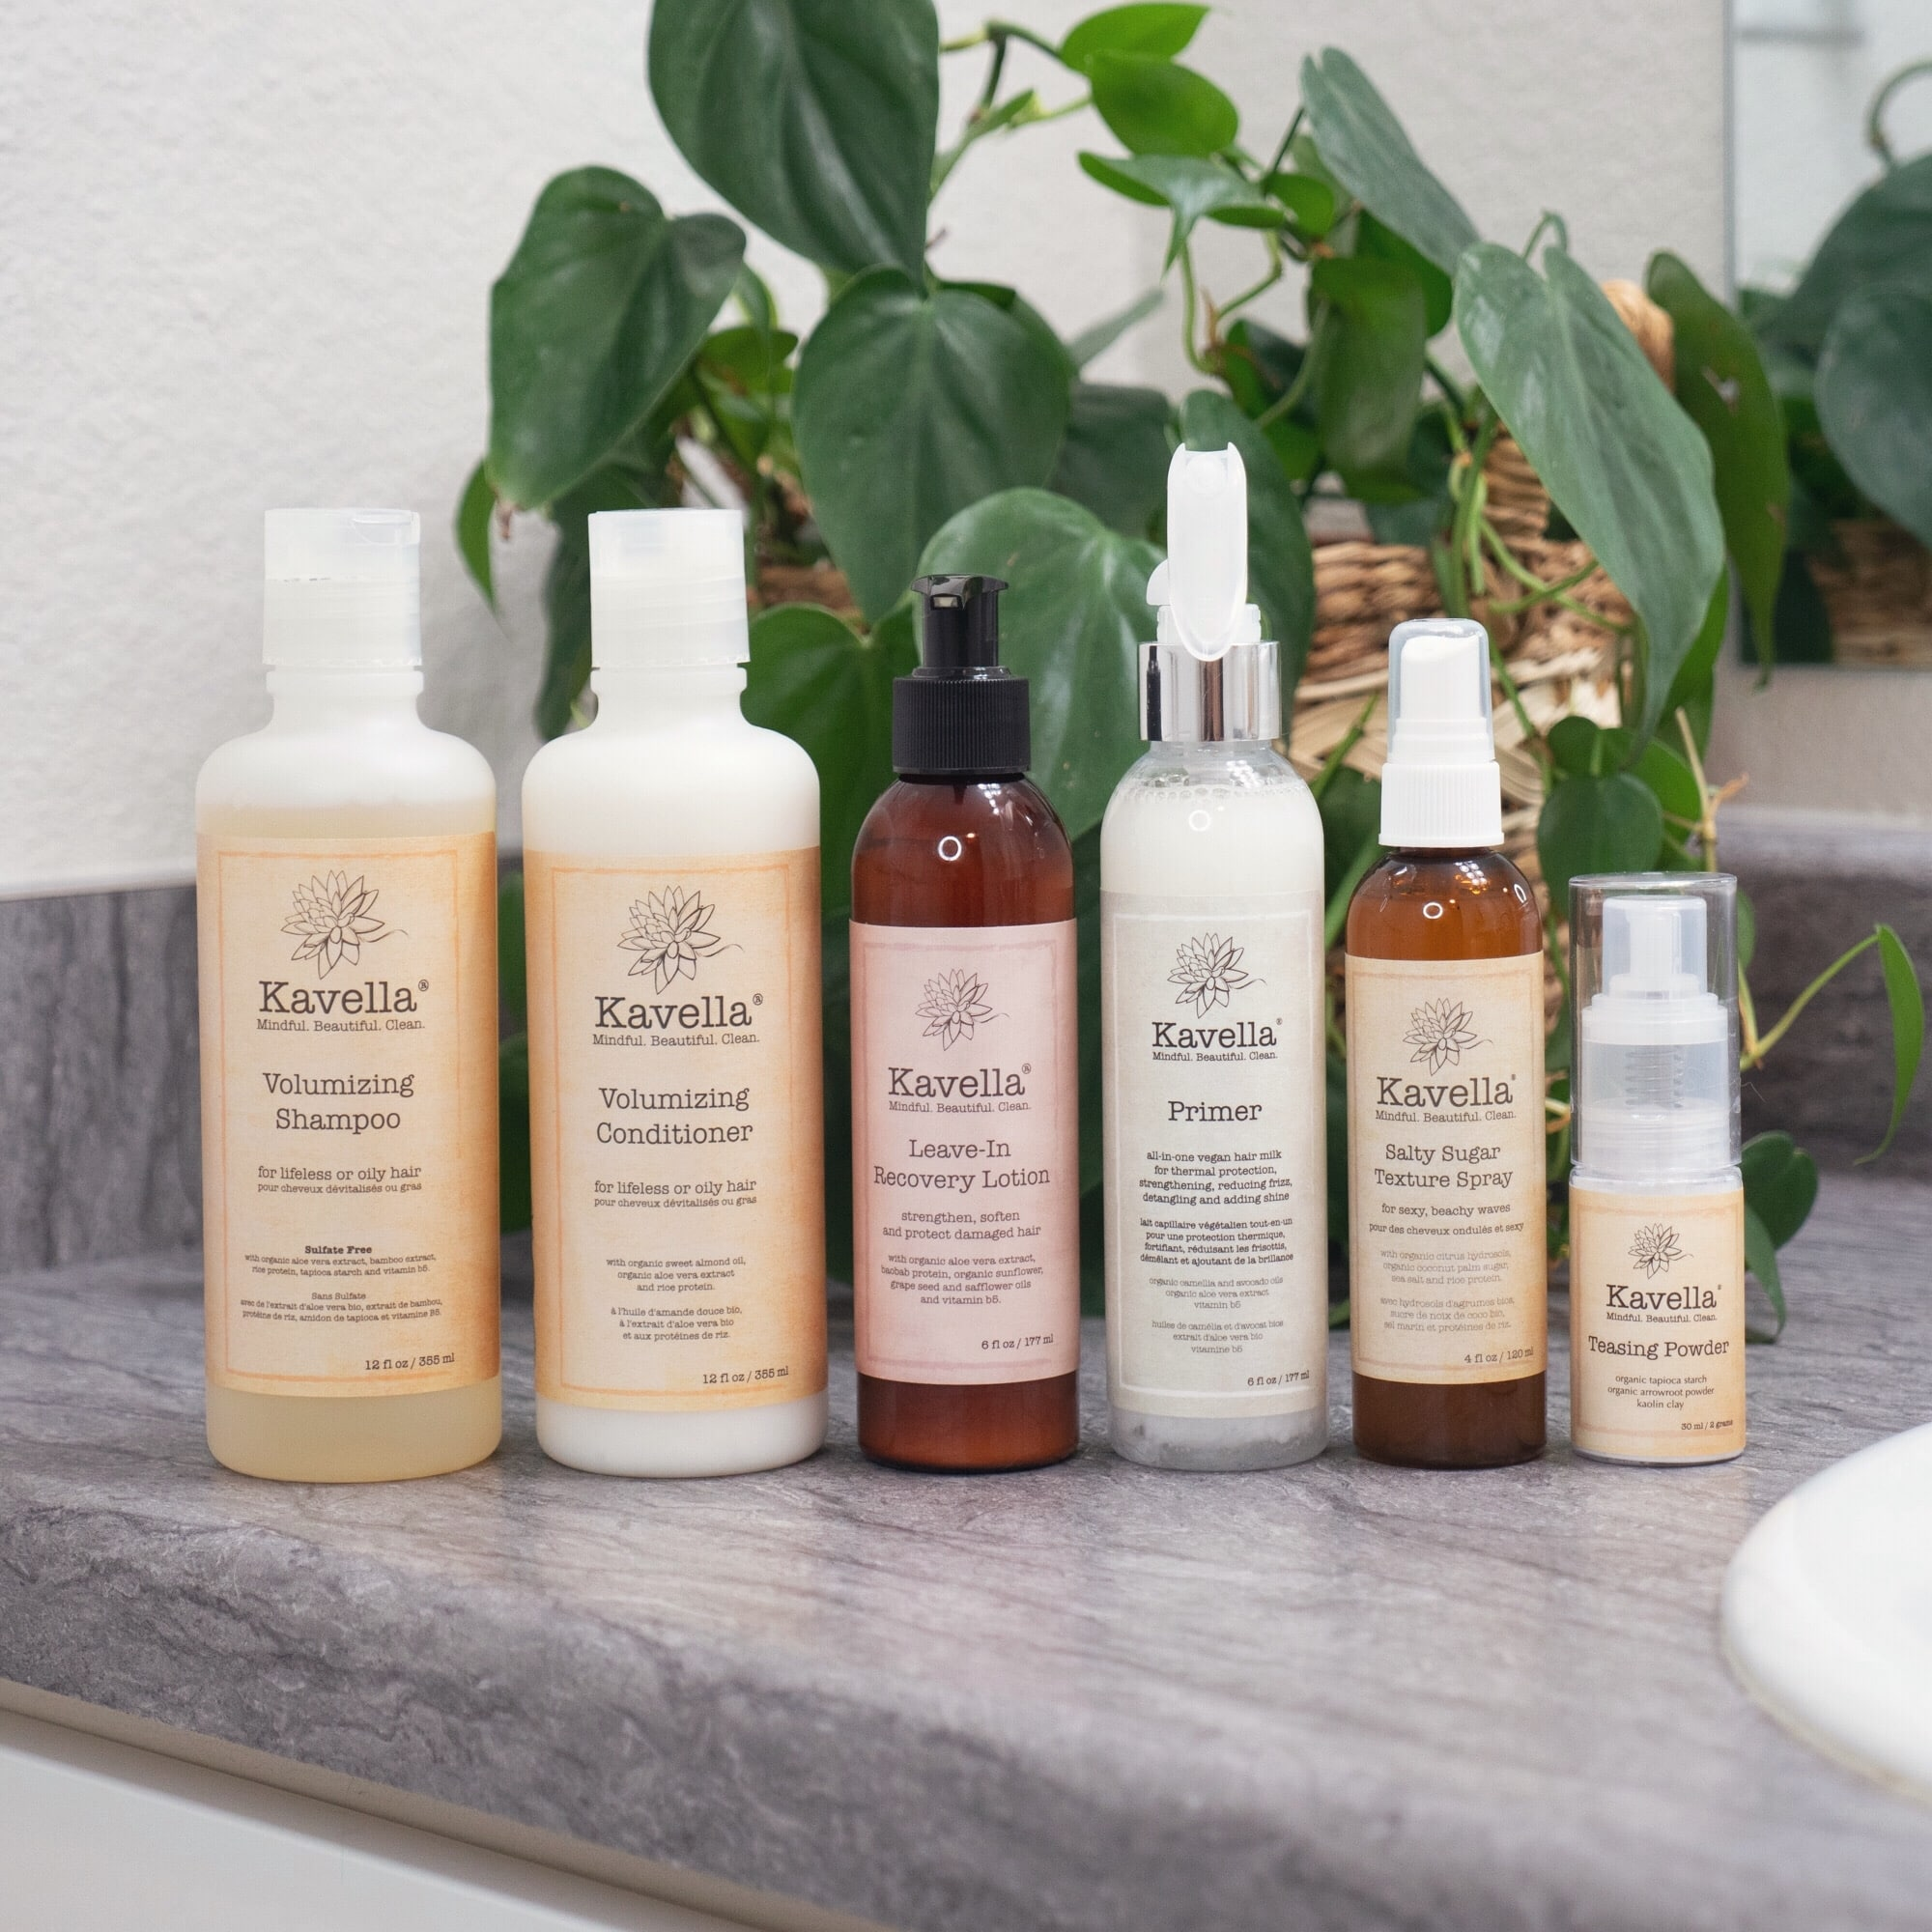 My Thoughts on Kavella Hair Products - a Cruelty-Free Salon Line